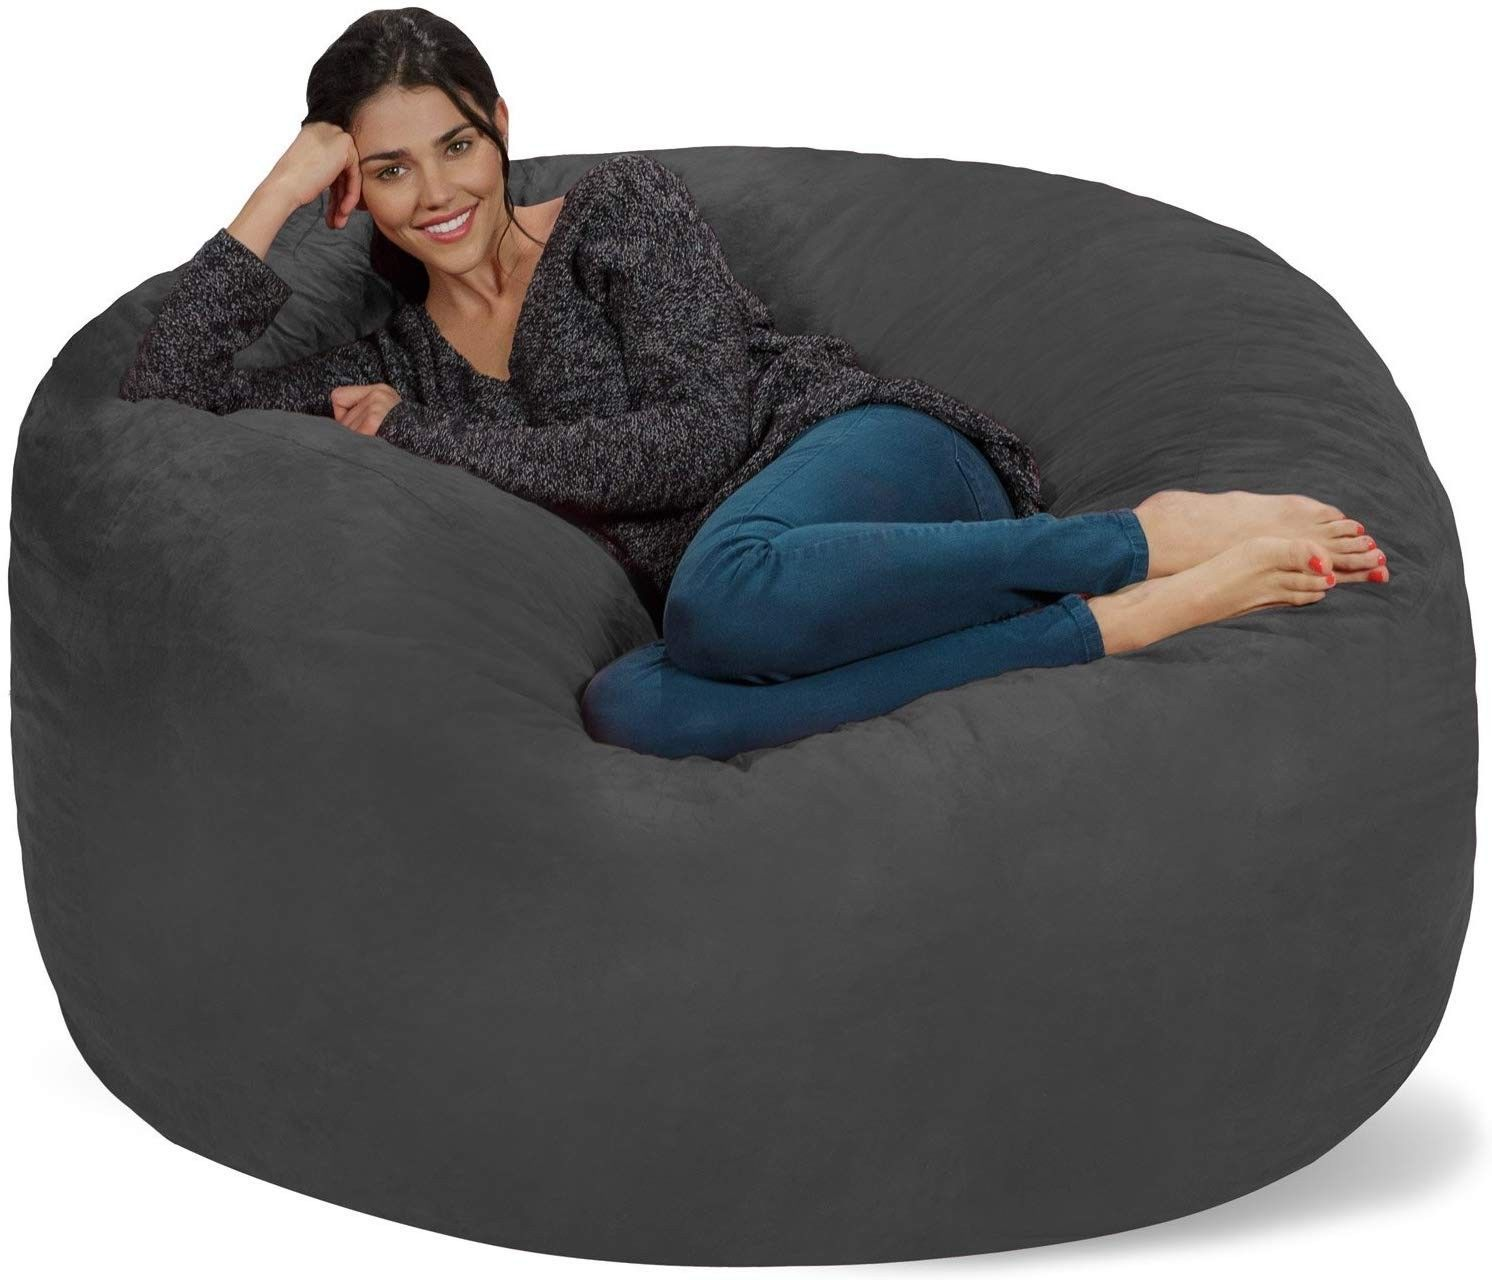 Details About Chill Sack Bean Bag Chair Giant 5 Memory Foam